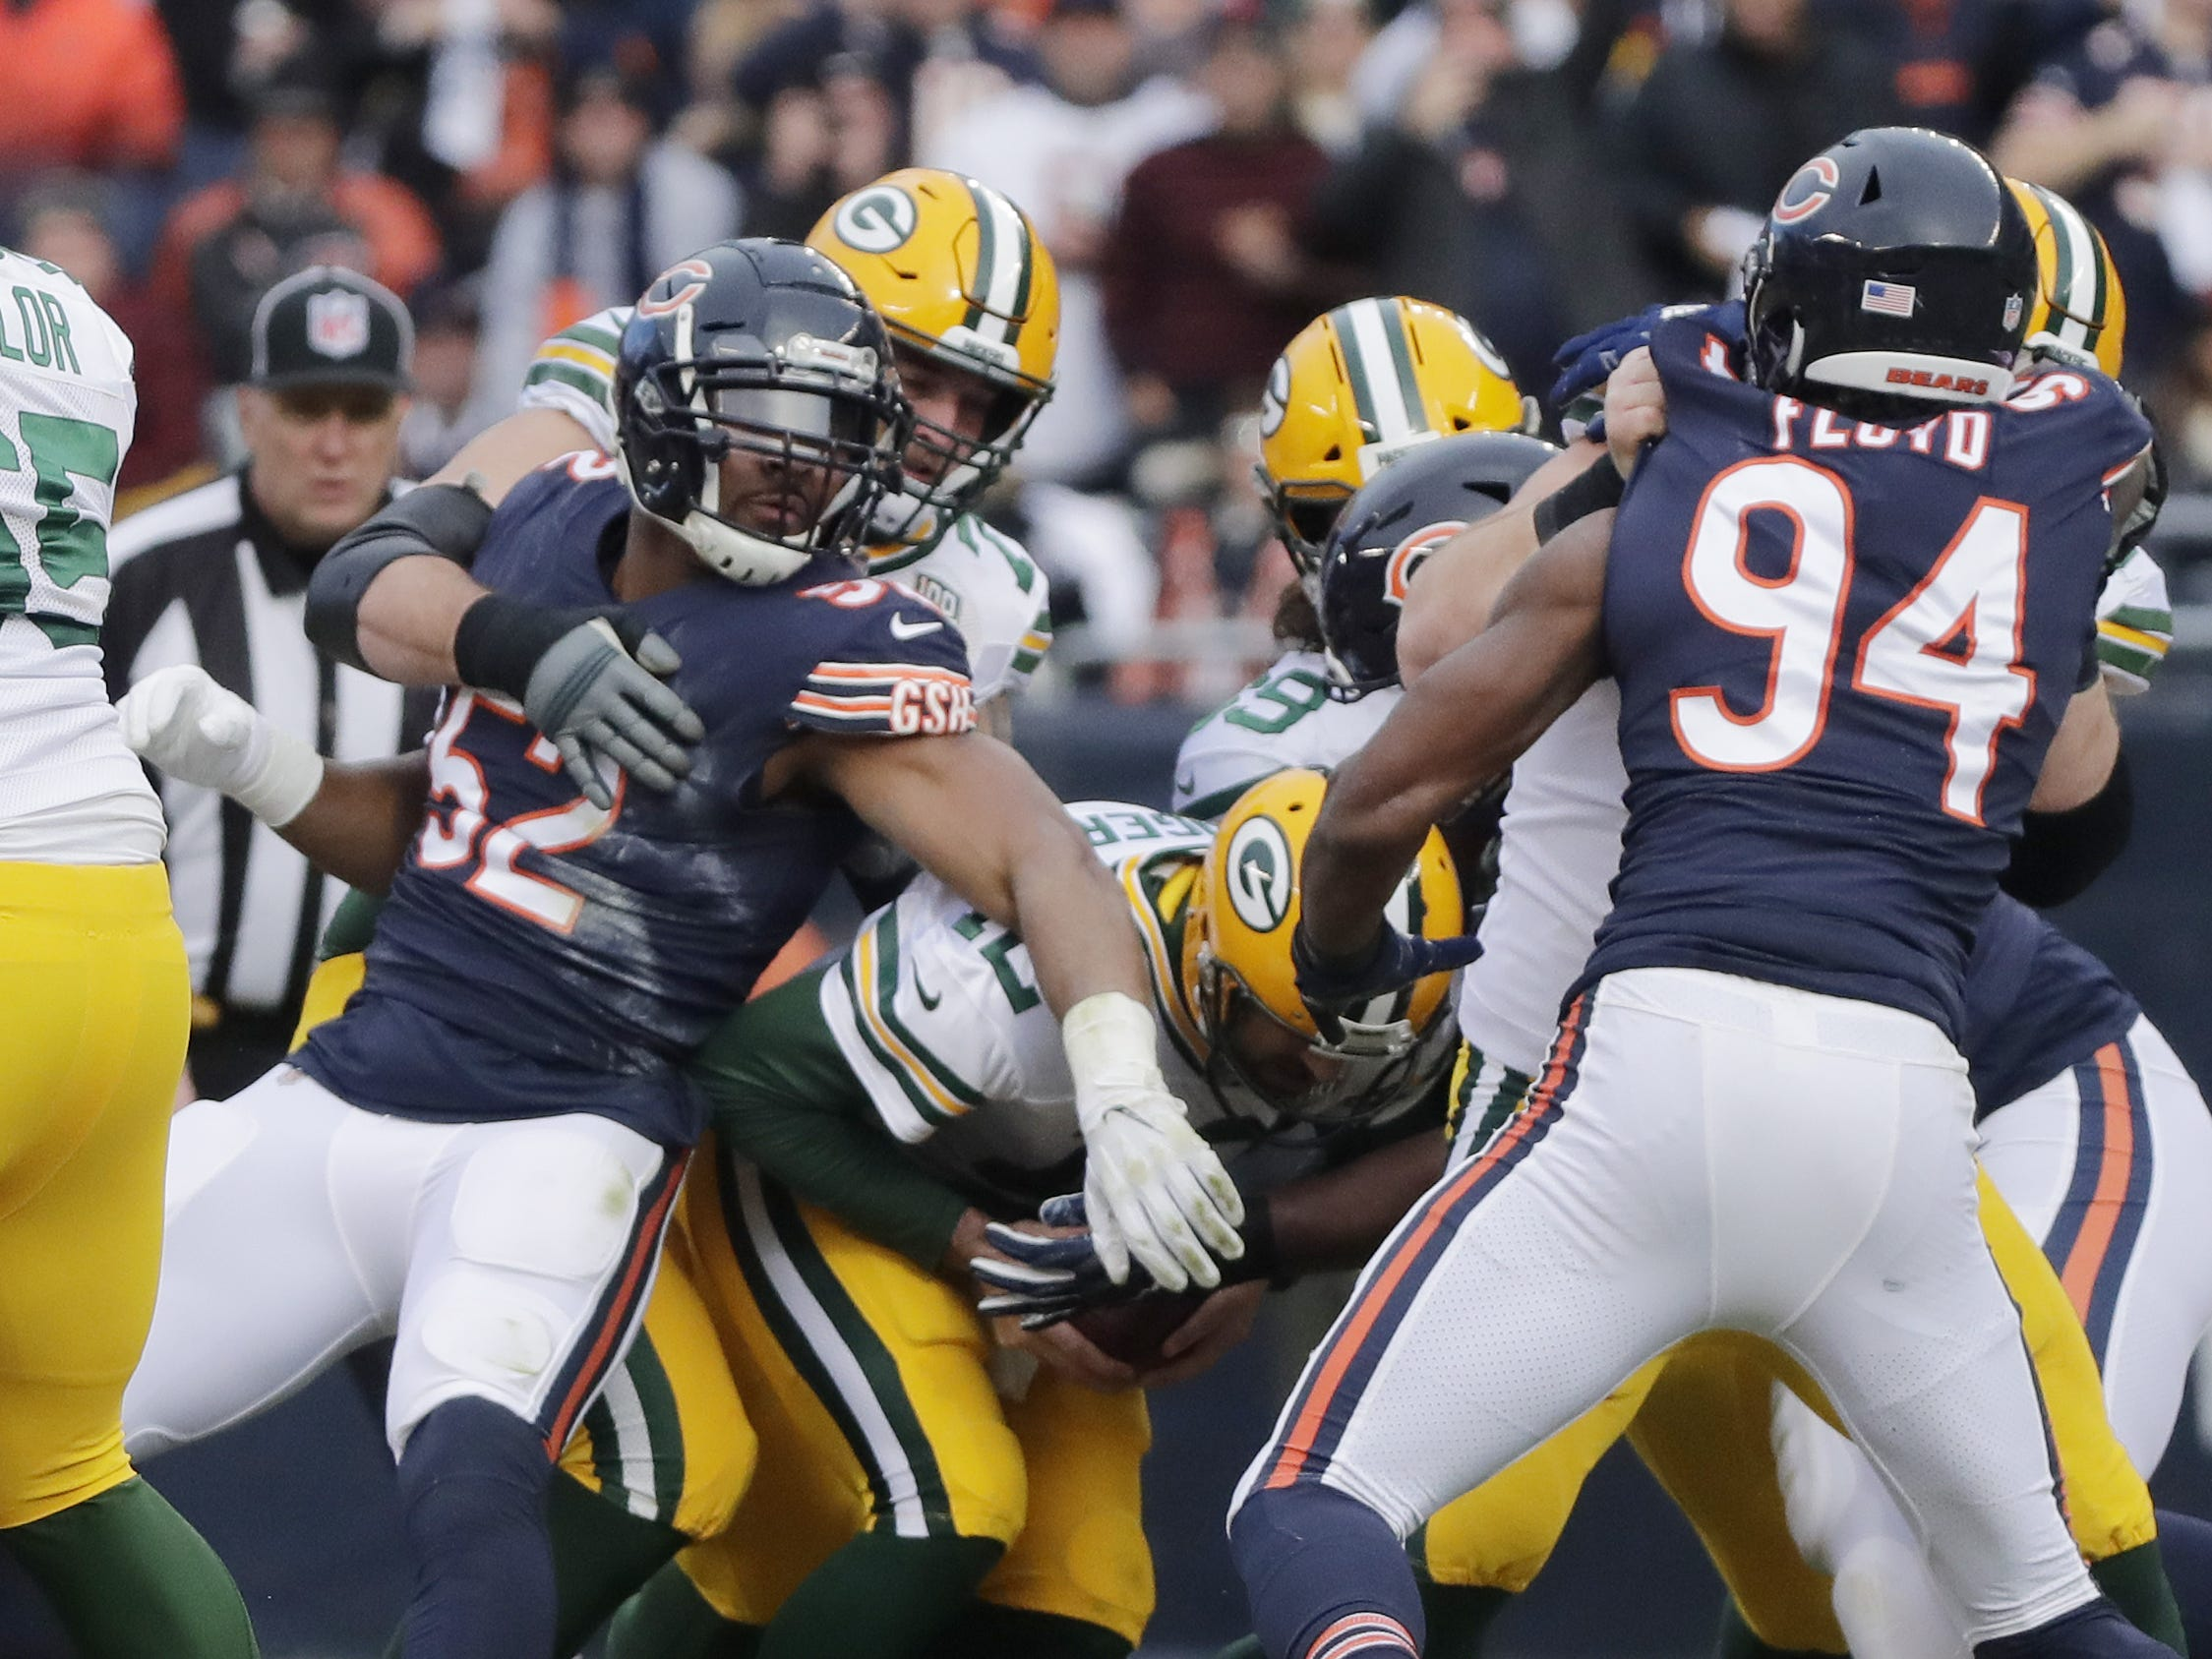 Chicago Bears outside linebacker Khalil Mack (52) sacks Green Bay Packers quarterback Aaron Rodgers (12) in the first quarter at Soldier Field on Sunday, December 16, 2018 in Chicago, Illinois. Adam Wesley/USA TODAY NETWORK-Wis